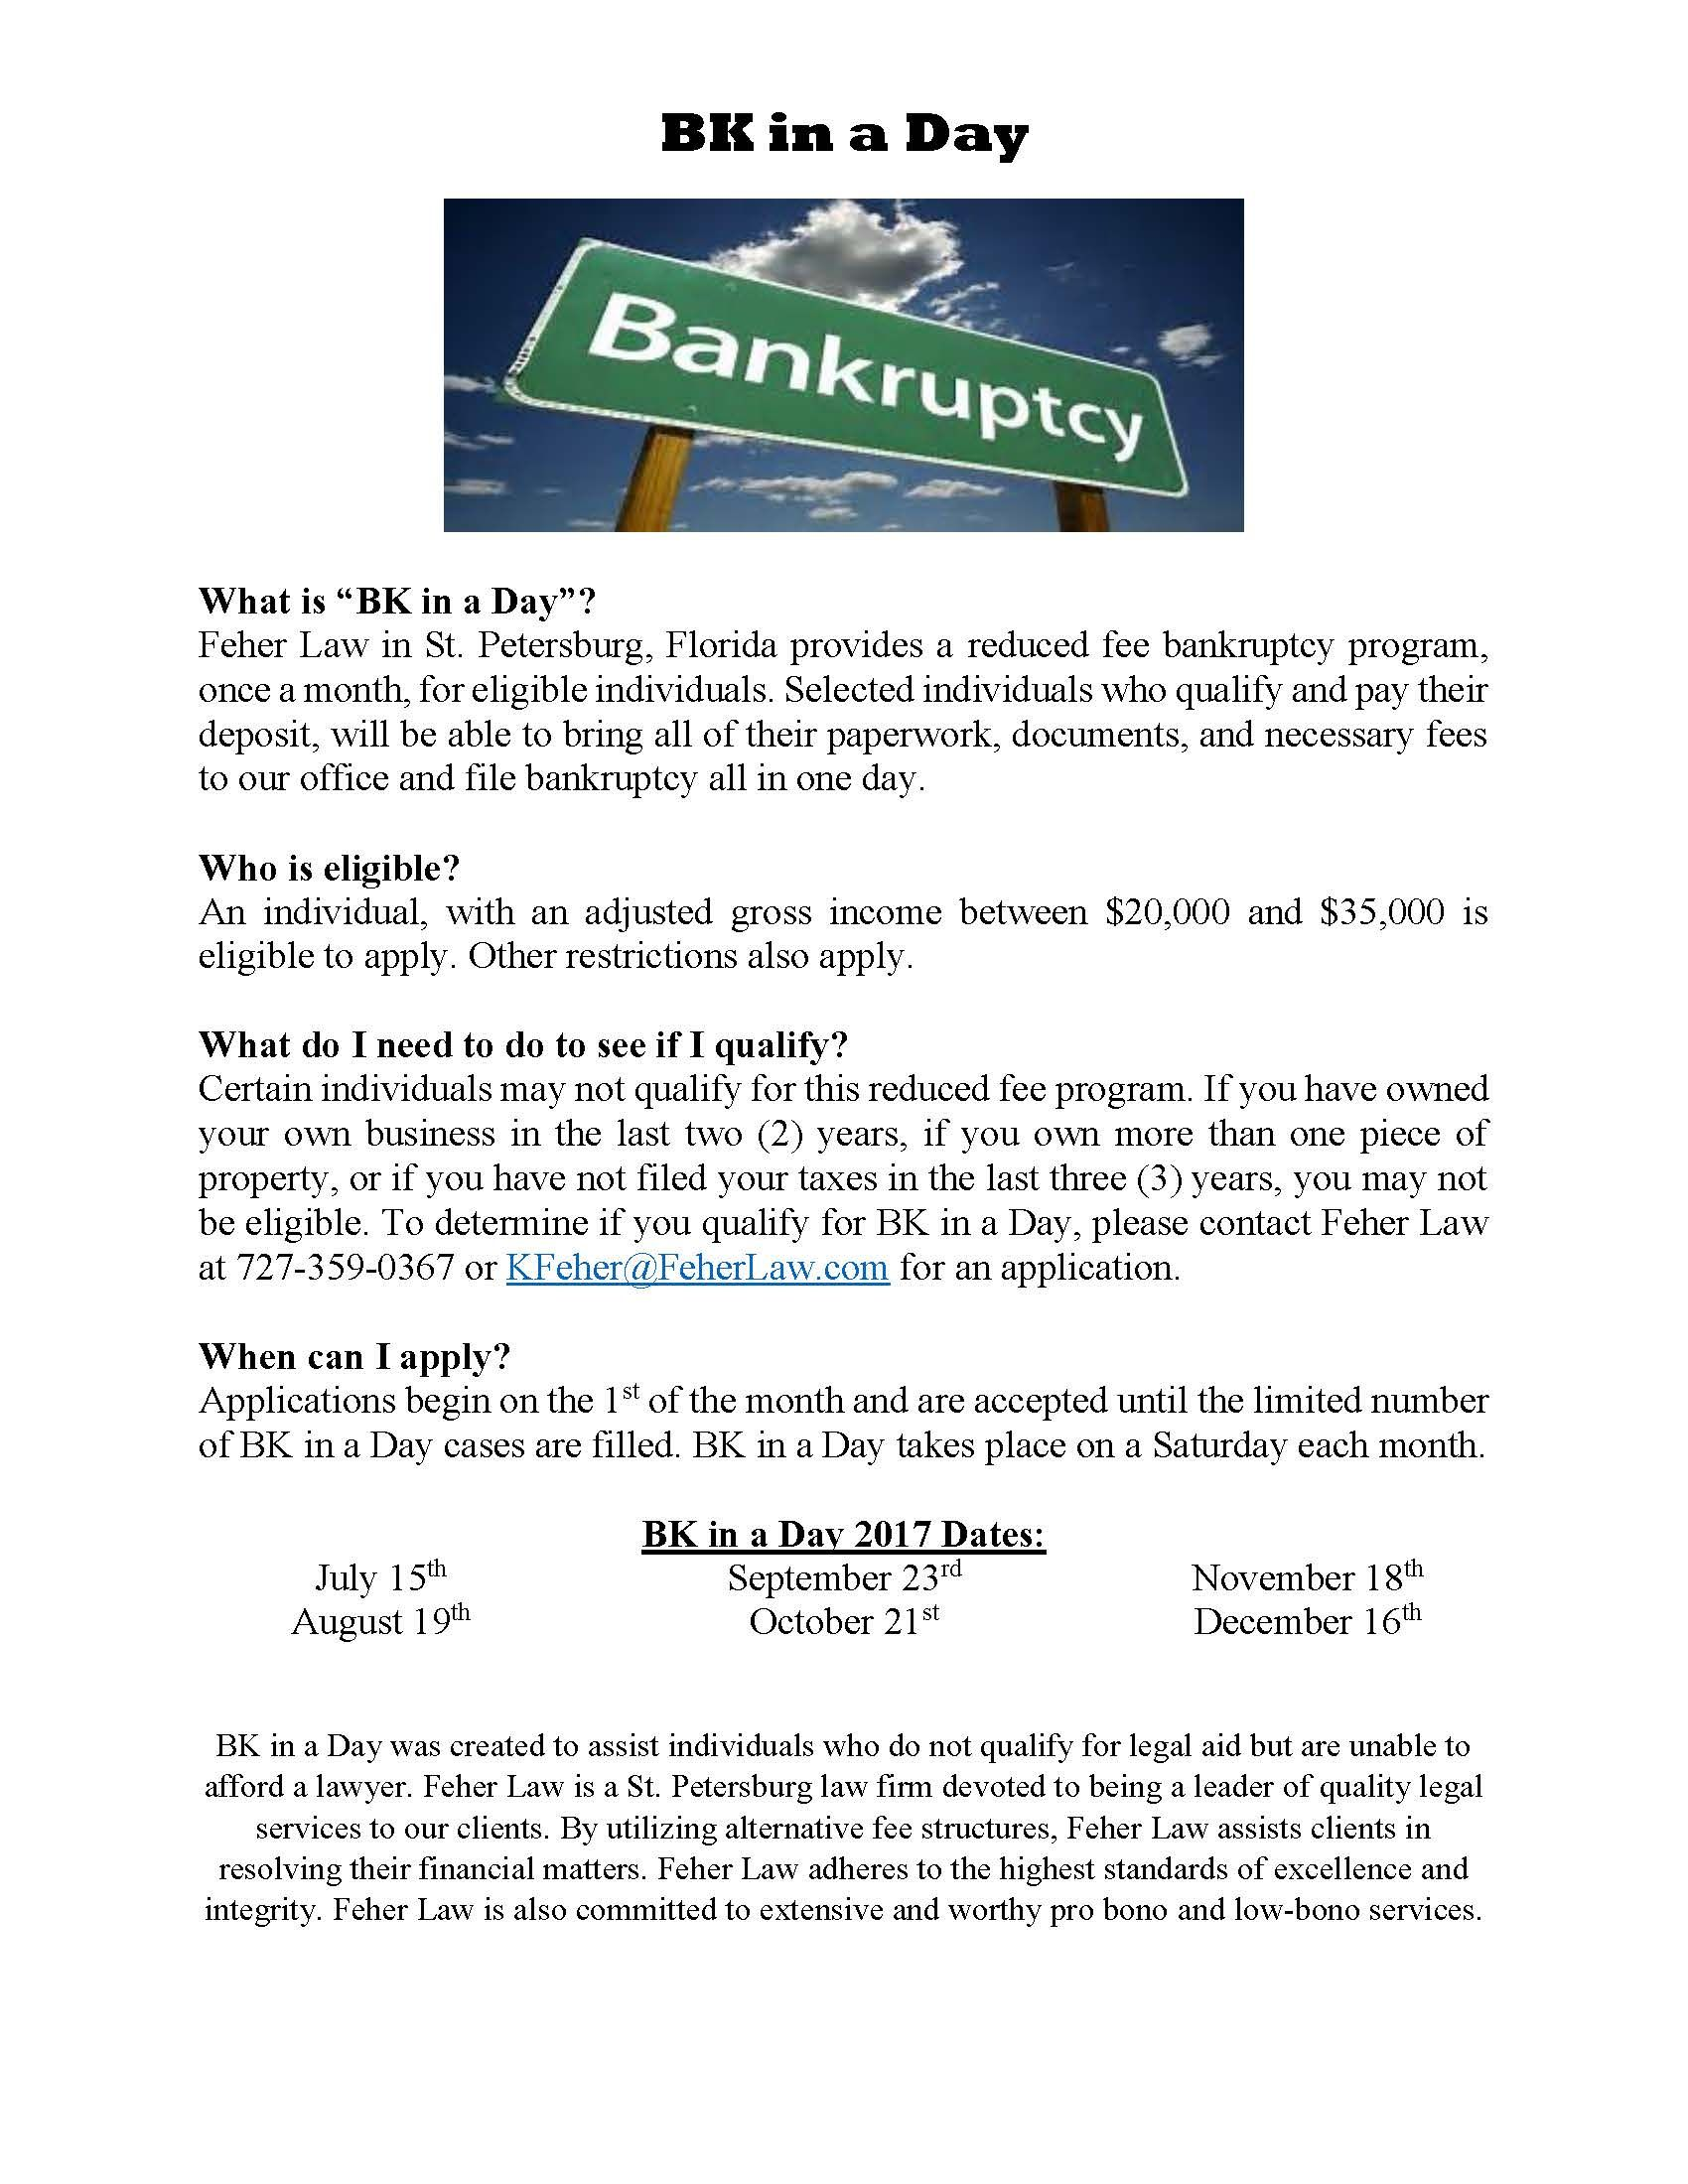 Low Cost Bankruptcy Clinic For Residents Of St Petersburg Fl And Neighboring Areas Bankruptcy Chapter 13 Petersburg